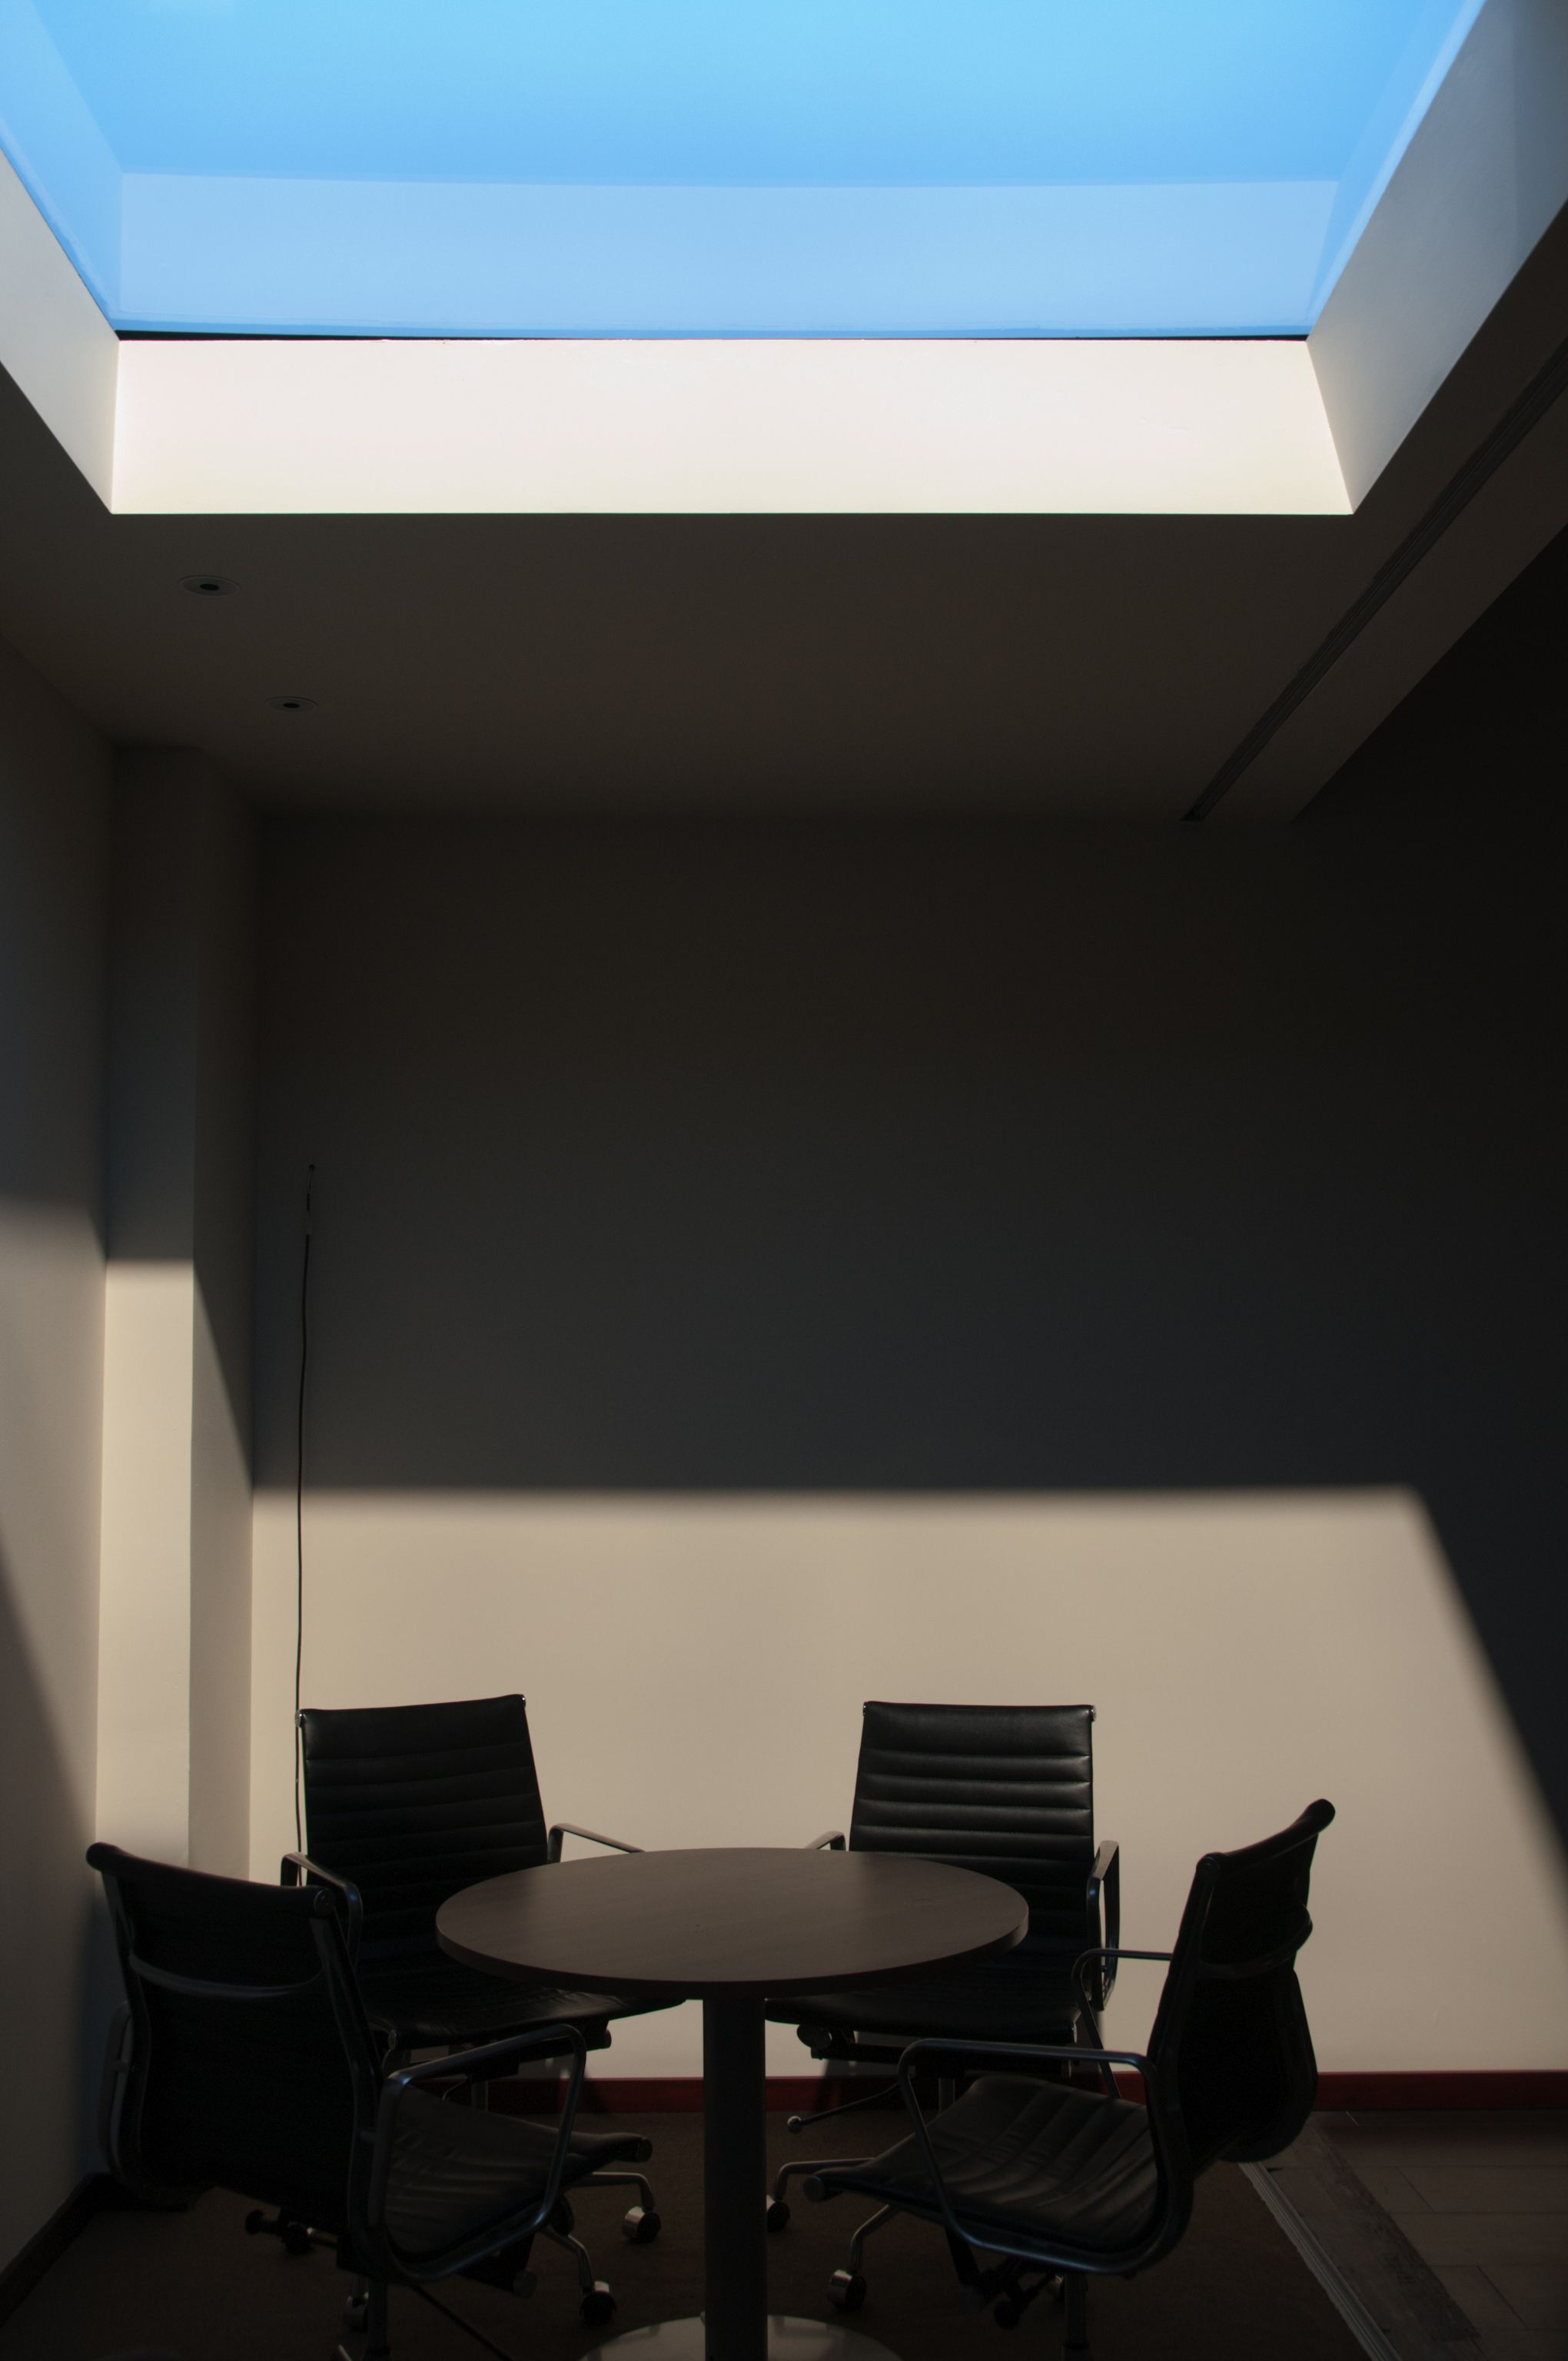 Coelux revolutionary artificial skylight system installed at Ideaworks' London Experience Centre